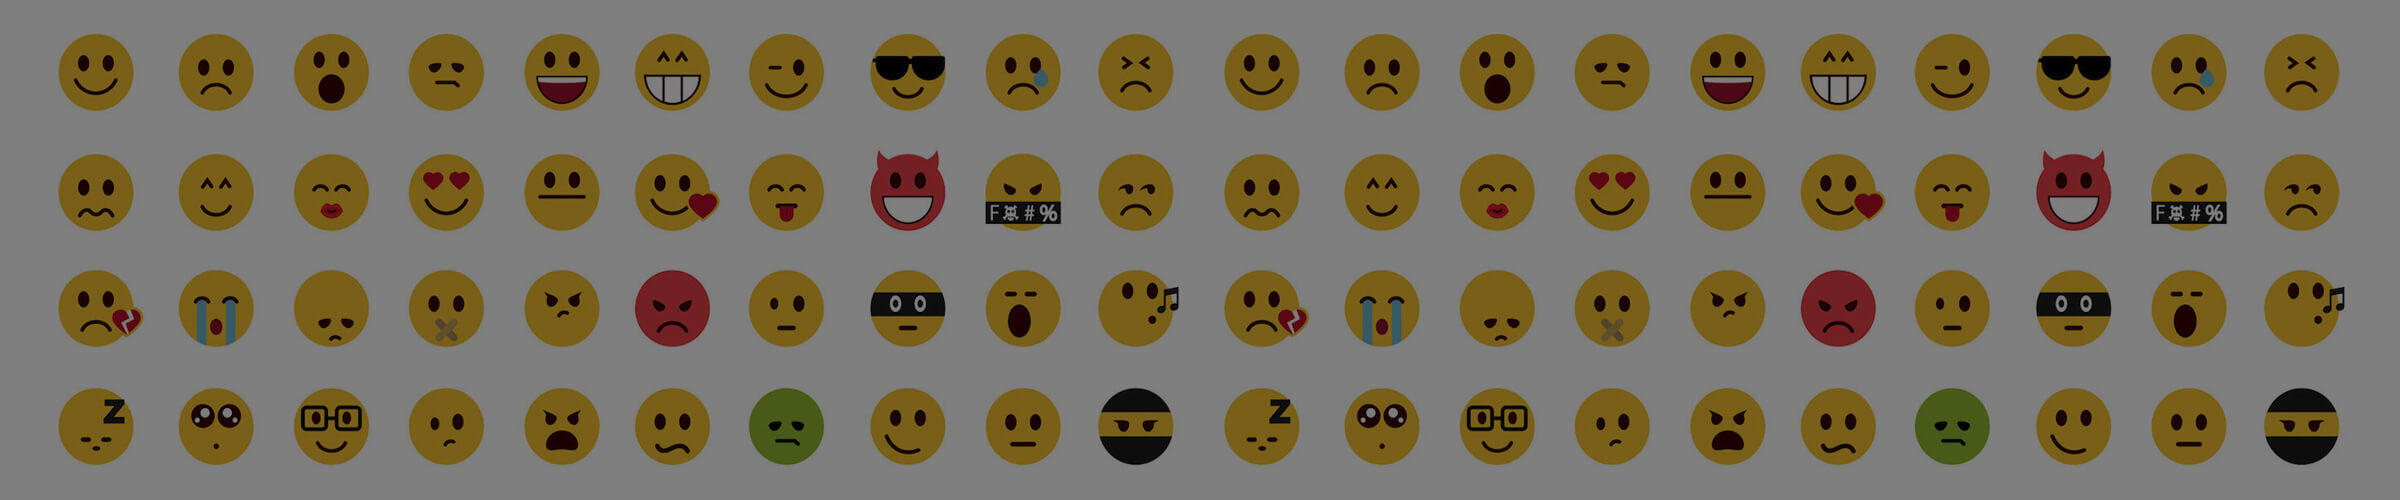 WordPress emoticons uitschakelen